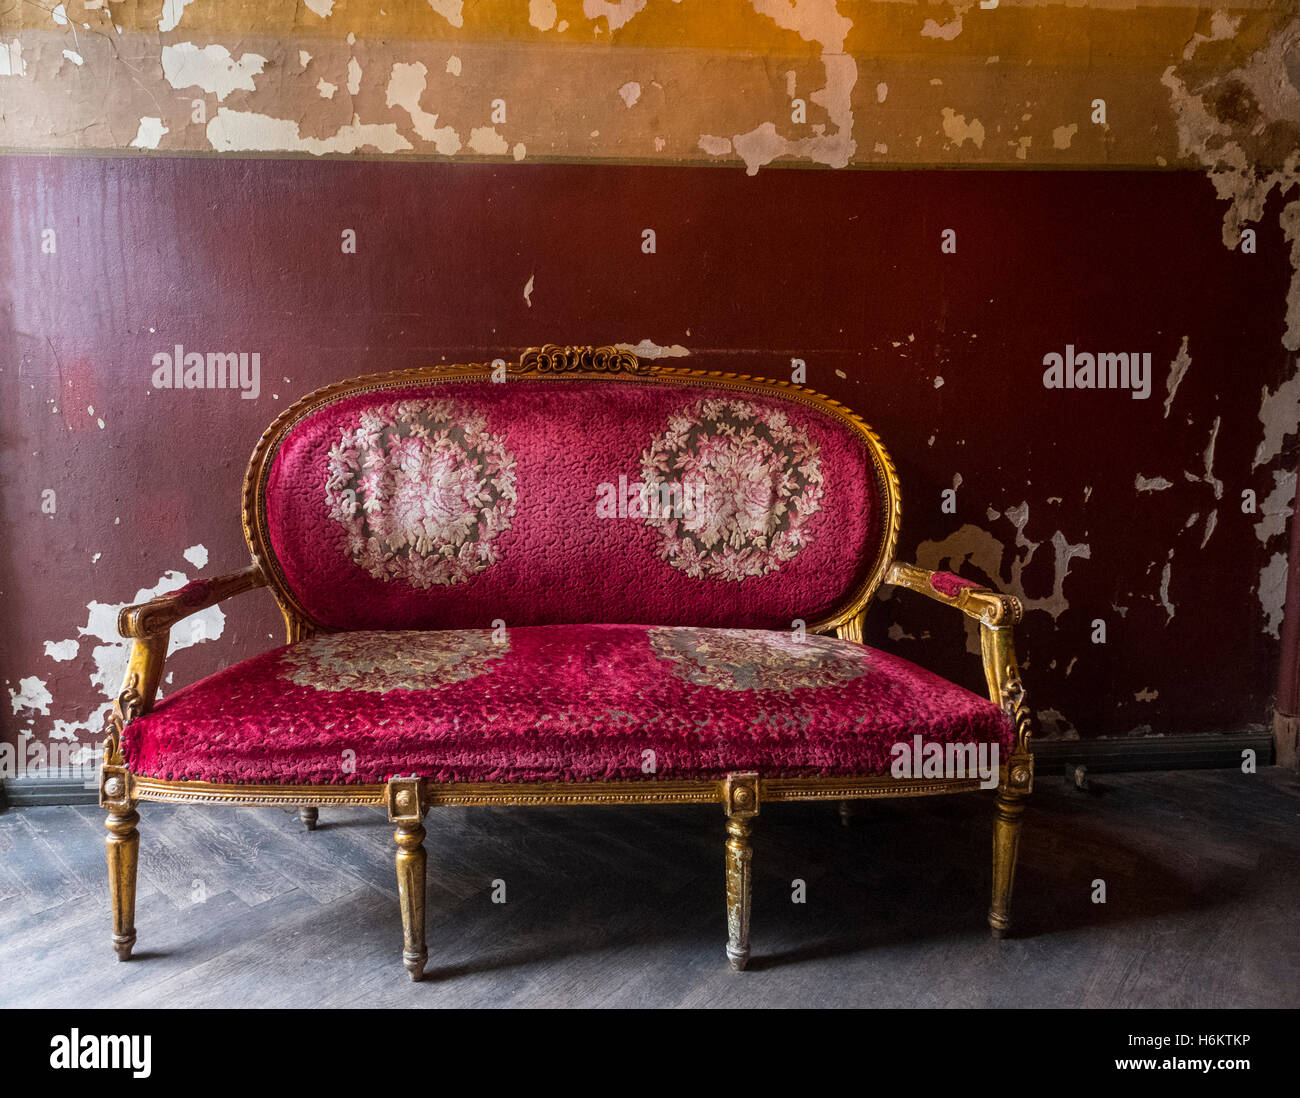 Old antique red sofa with gold gilt legs and ornate decoration - Stock Image - Antique Sofa Chair Stock Photos & Antique Sofa Chair Stock Images